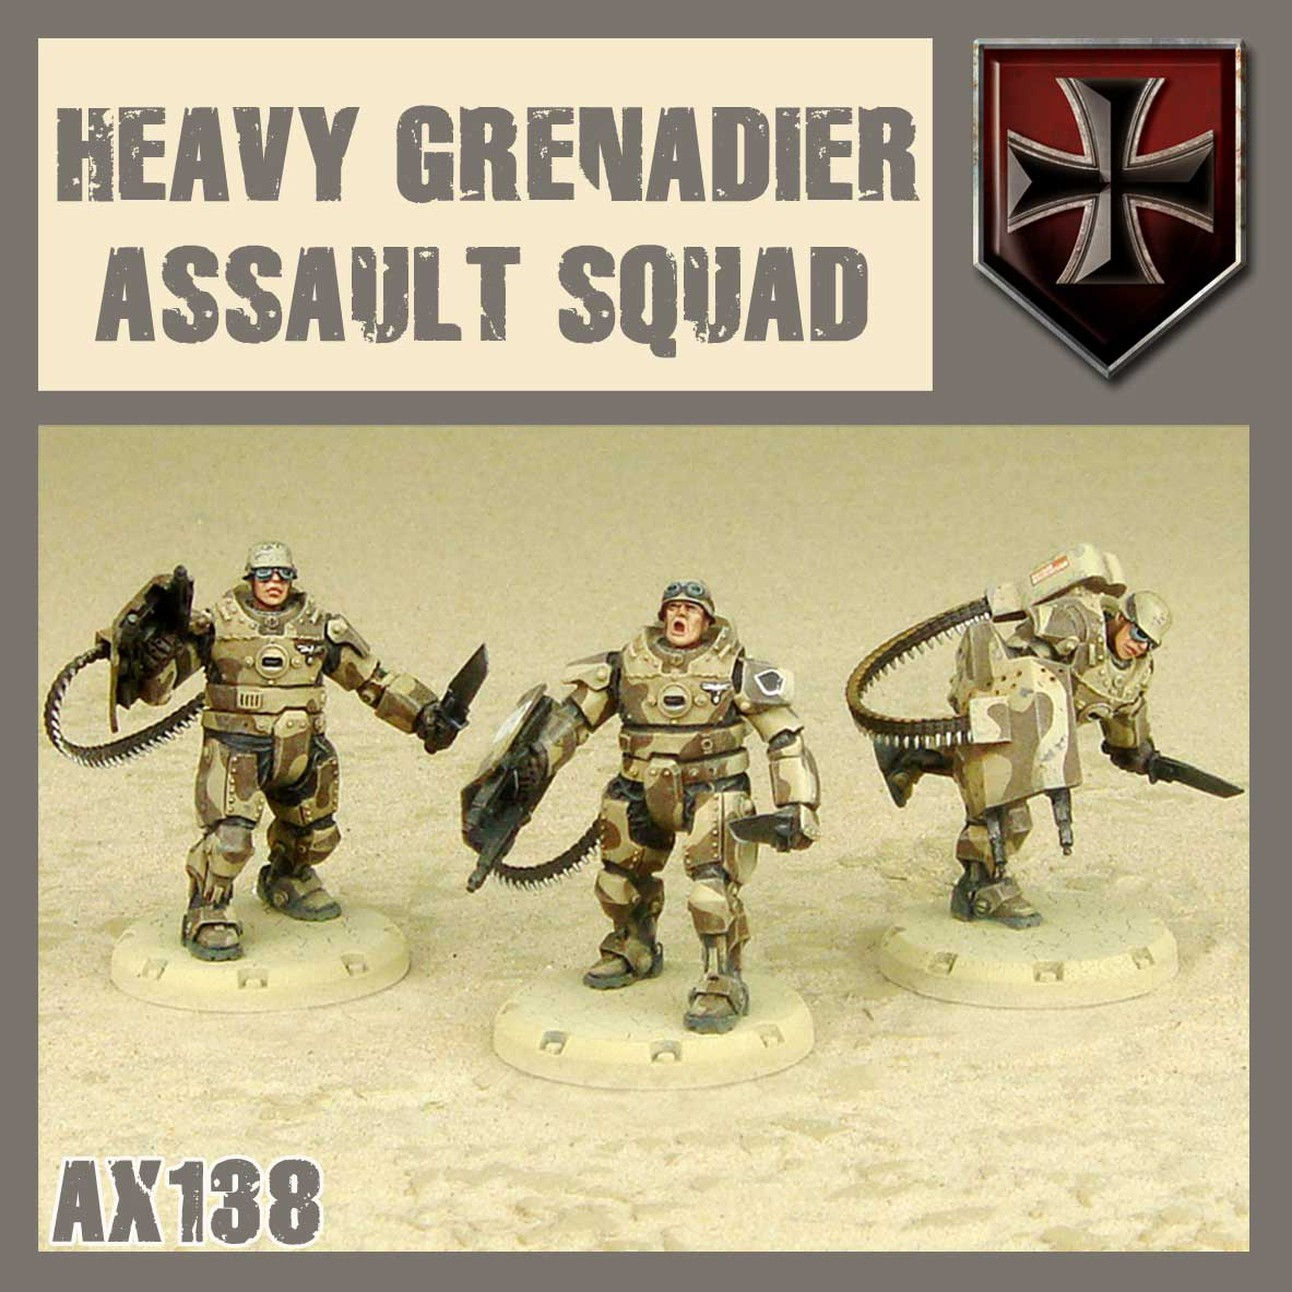 Heavy Grenadier Assault Squad